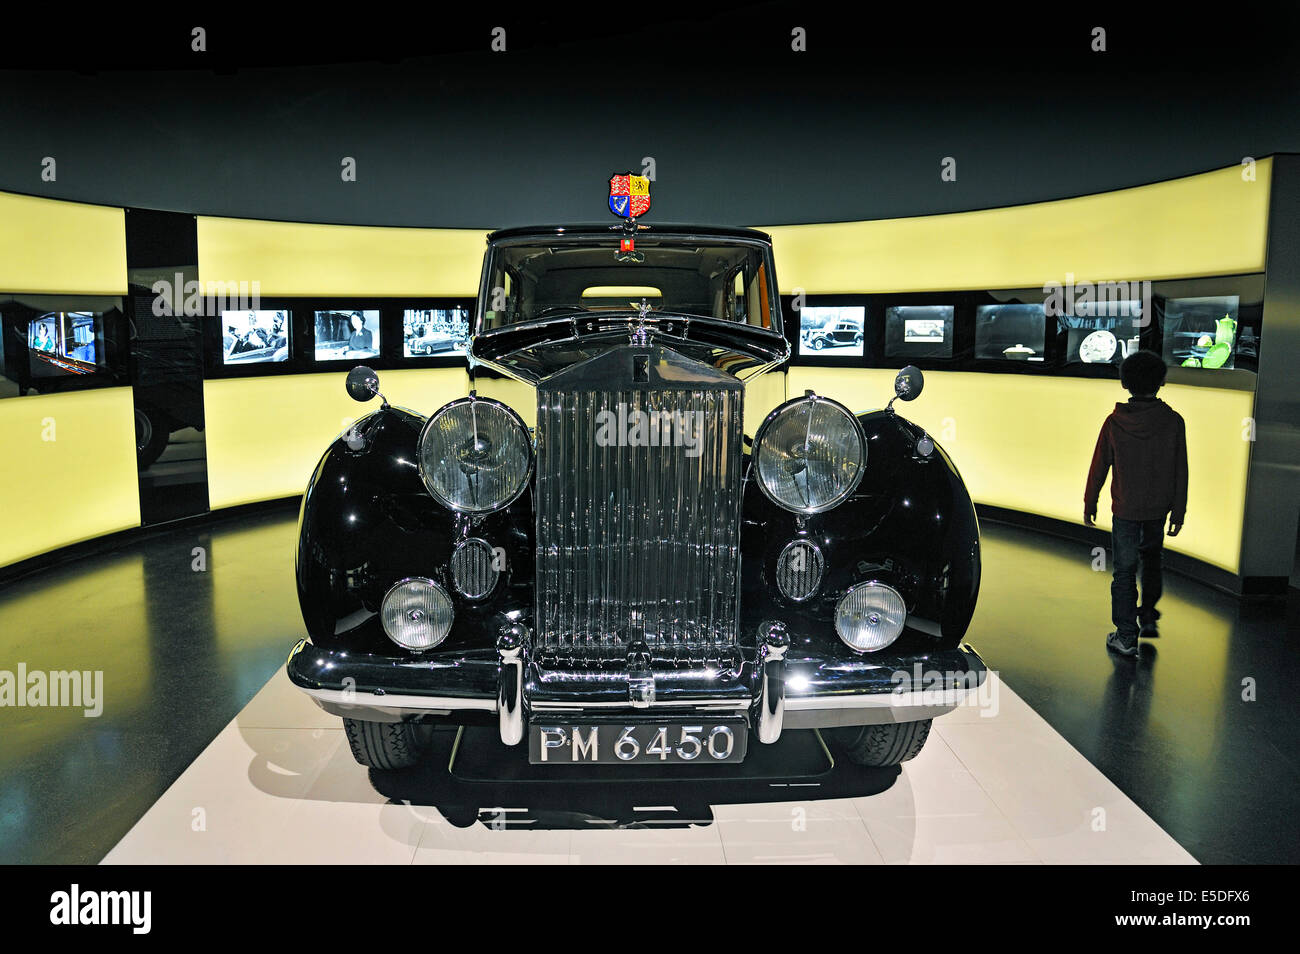 Rolls-Royce Phantom IV, 1950-56, only 18 pieces were built exclusively for royalty and heads of state, BMW Museum, - Stock Image